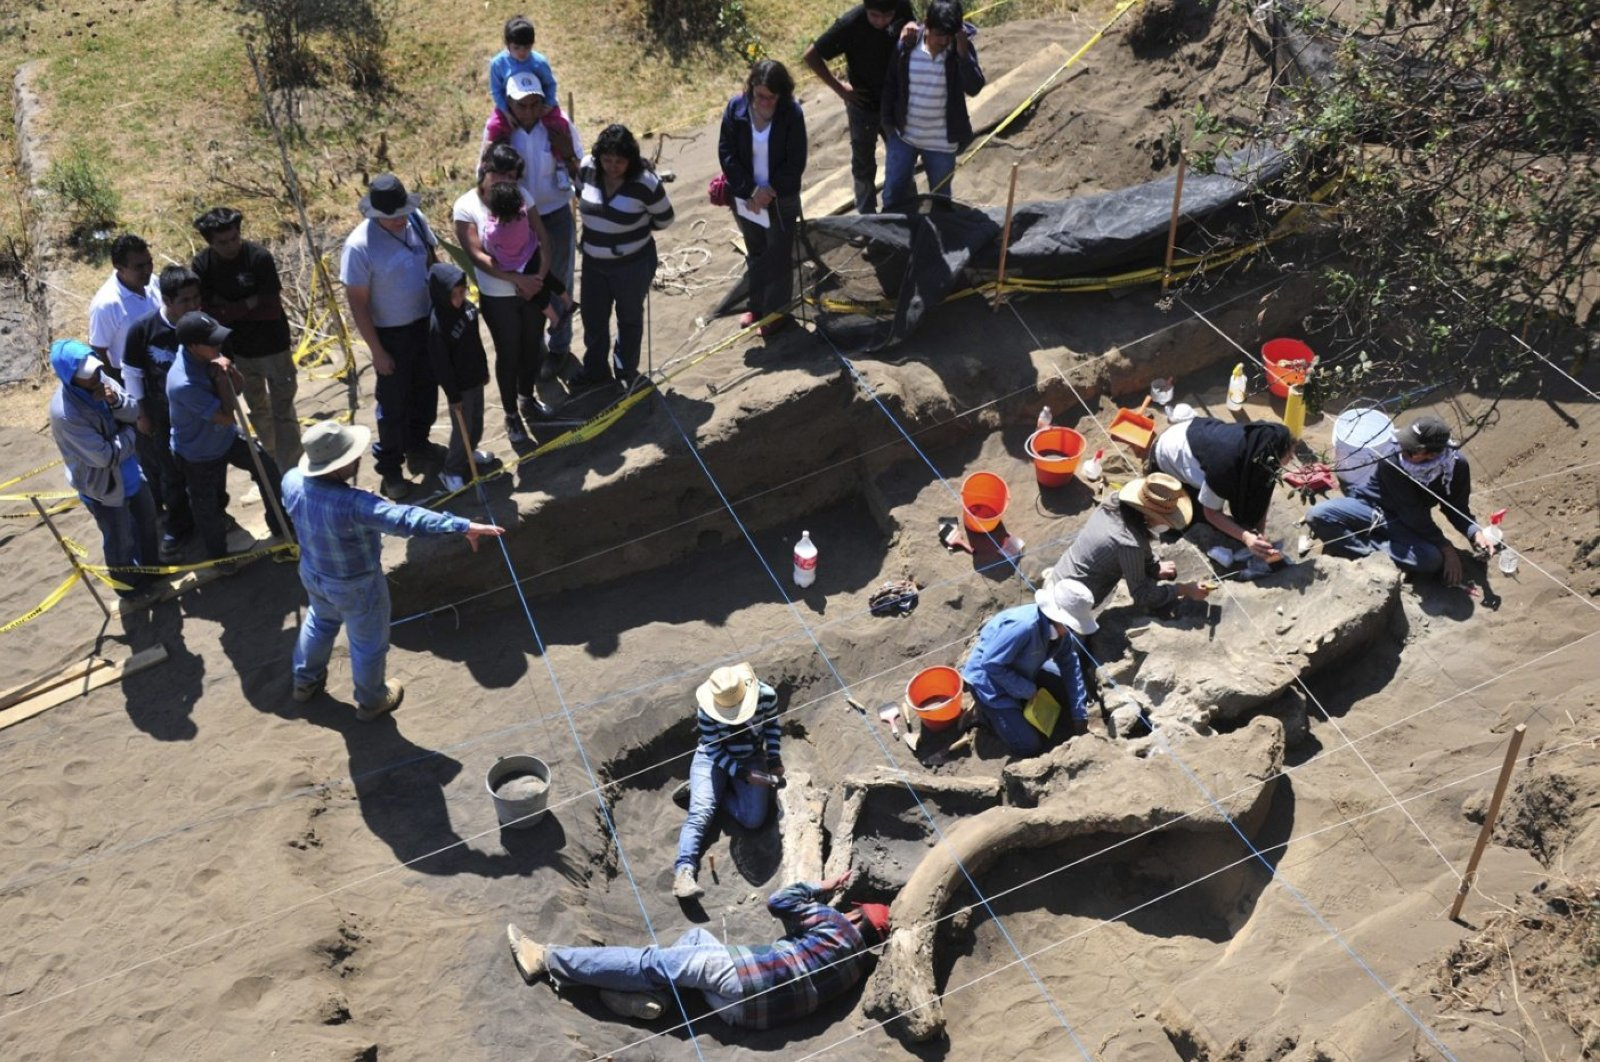 Archaeologists from Mexico's National Institute of Anthropology and History (INAH), work at the excavation of the buried remains of a Columbian mammoth in this handout photograph taken on April 4, 2013. (Reuters Photo)